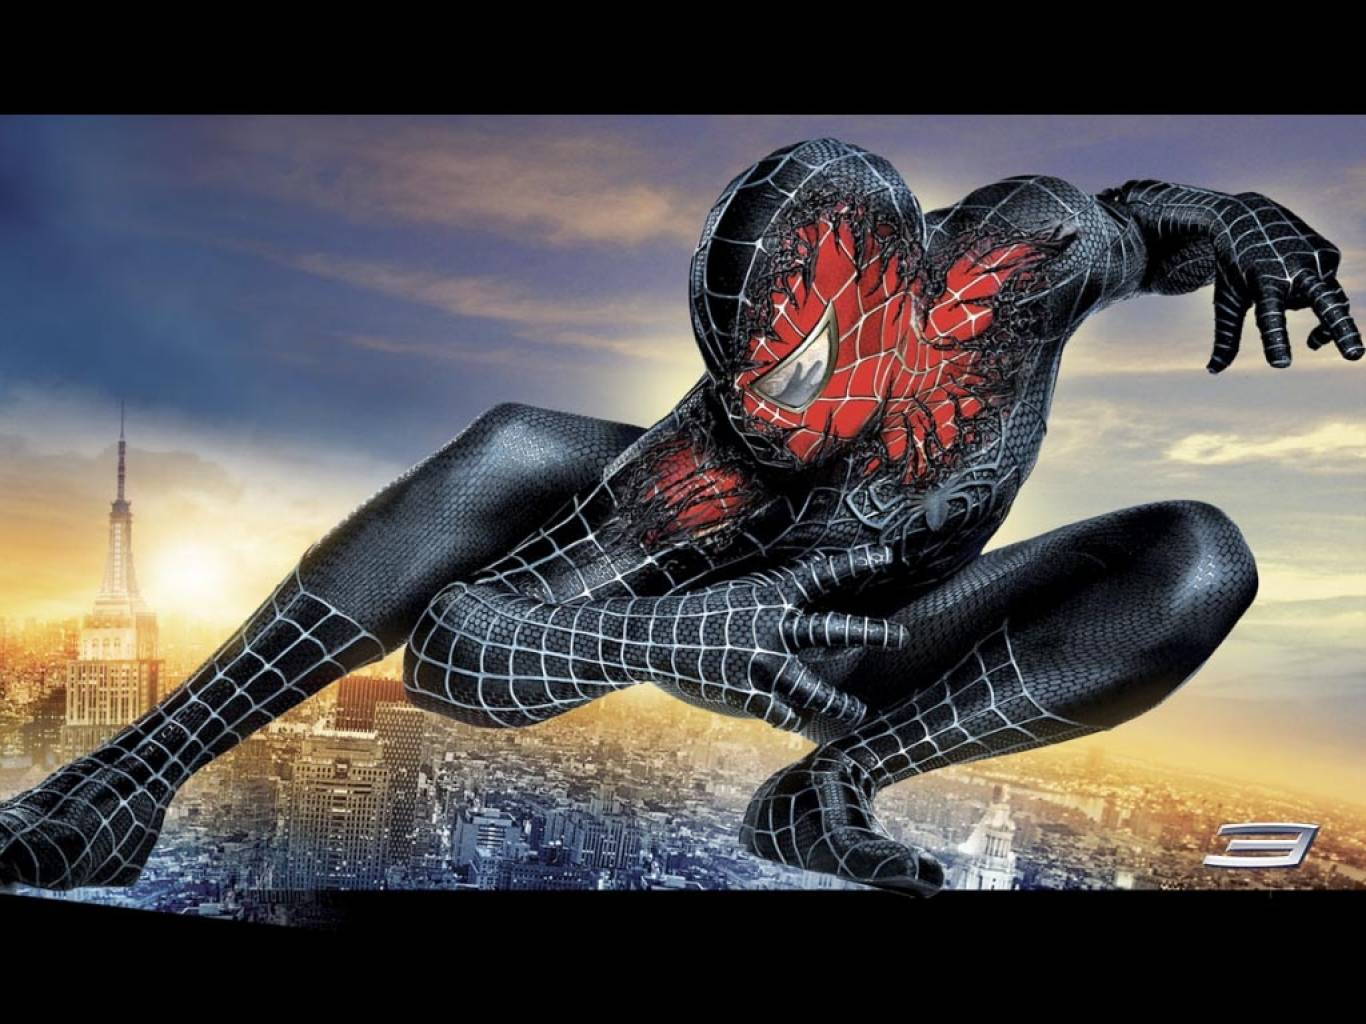 Spider Man 3 - The Battle Within Wallpapers